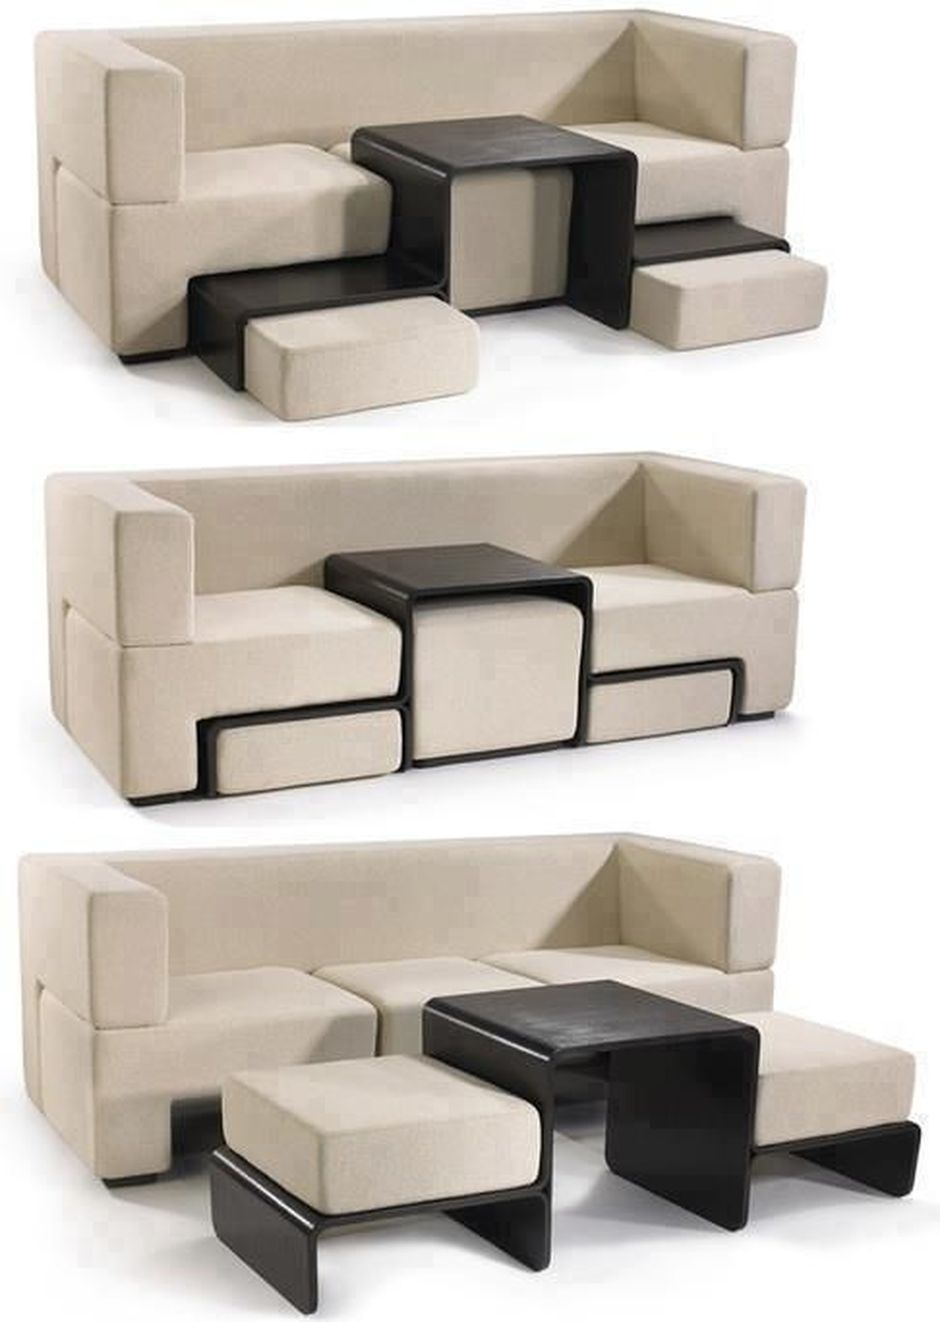 Cool Modular and Convertible Sofa Design for Small Living Room 29 ...